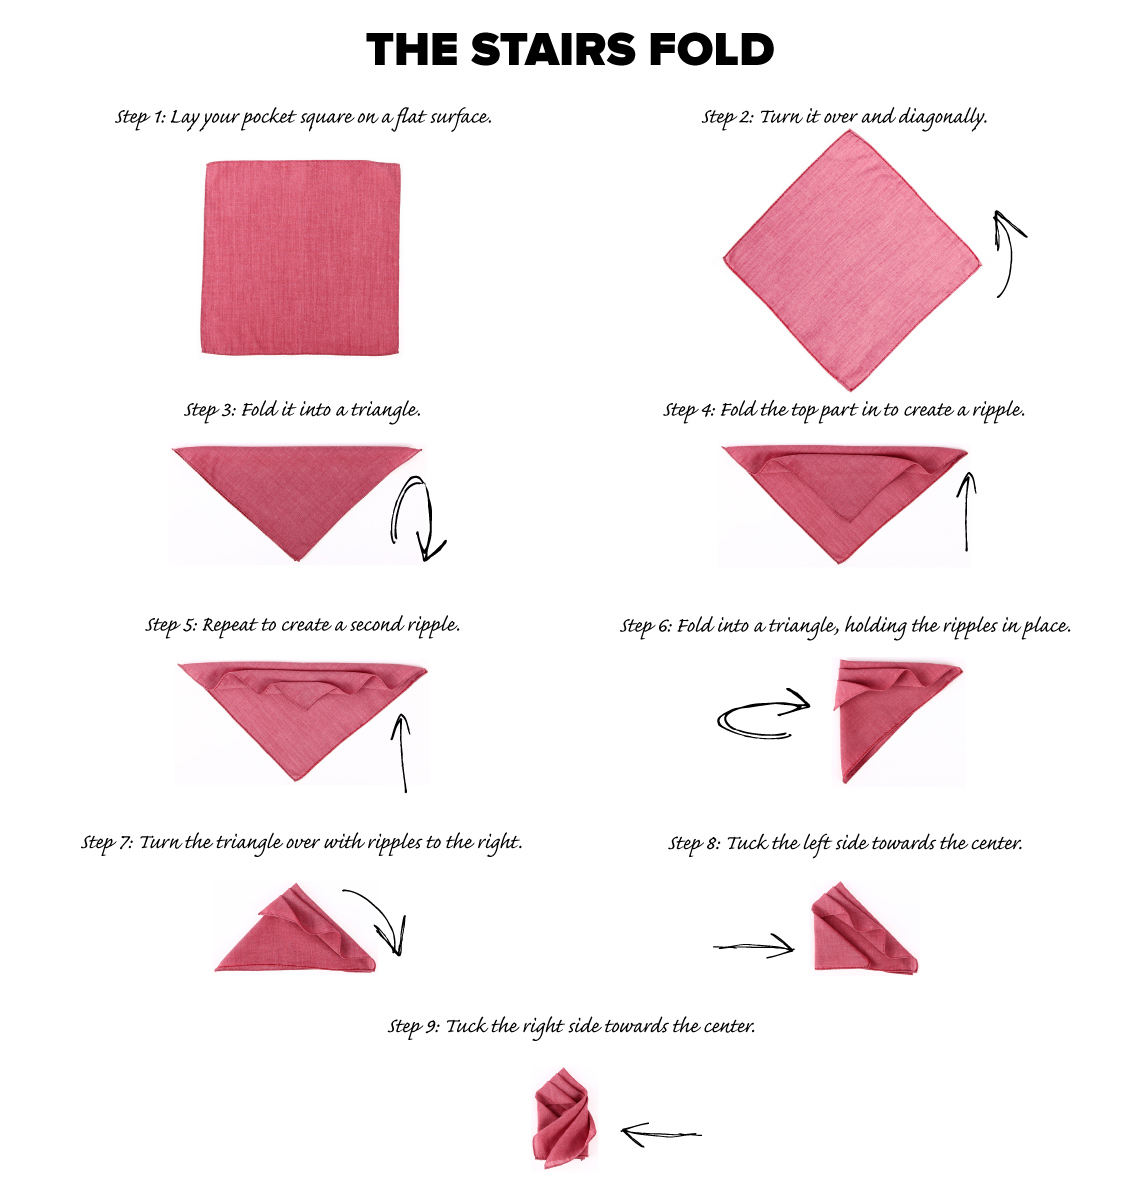 stairs fold pocket square